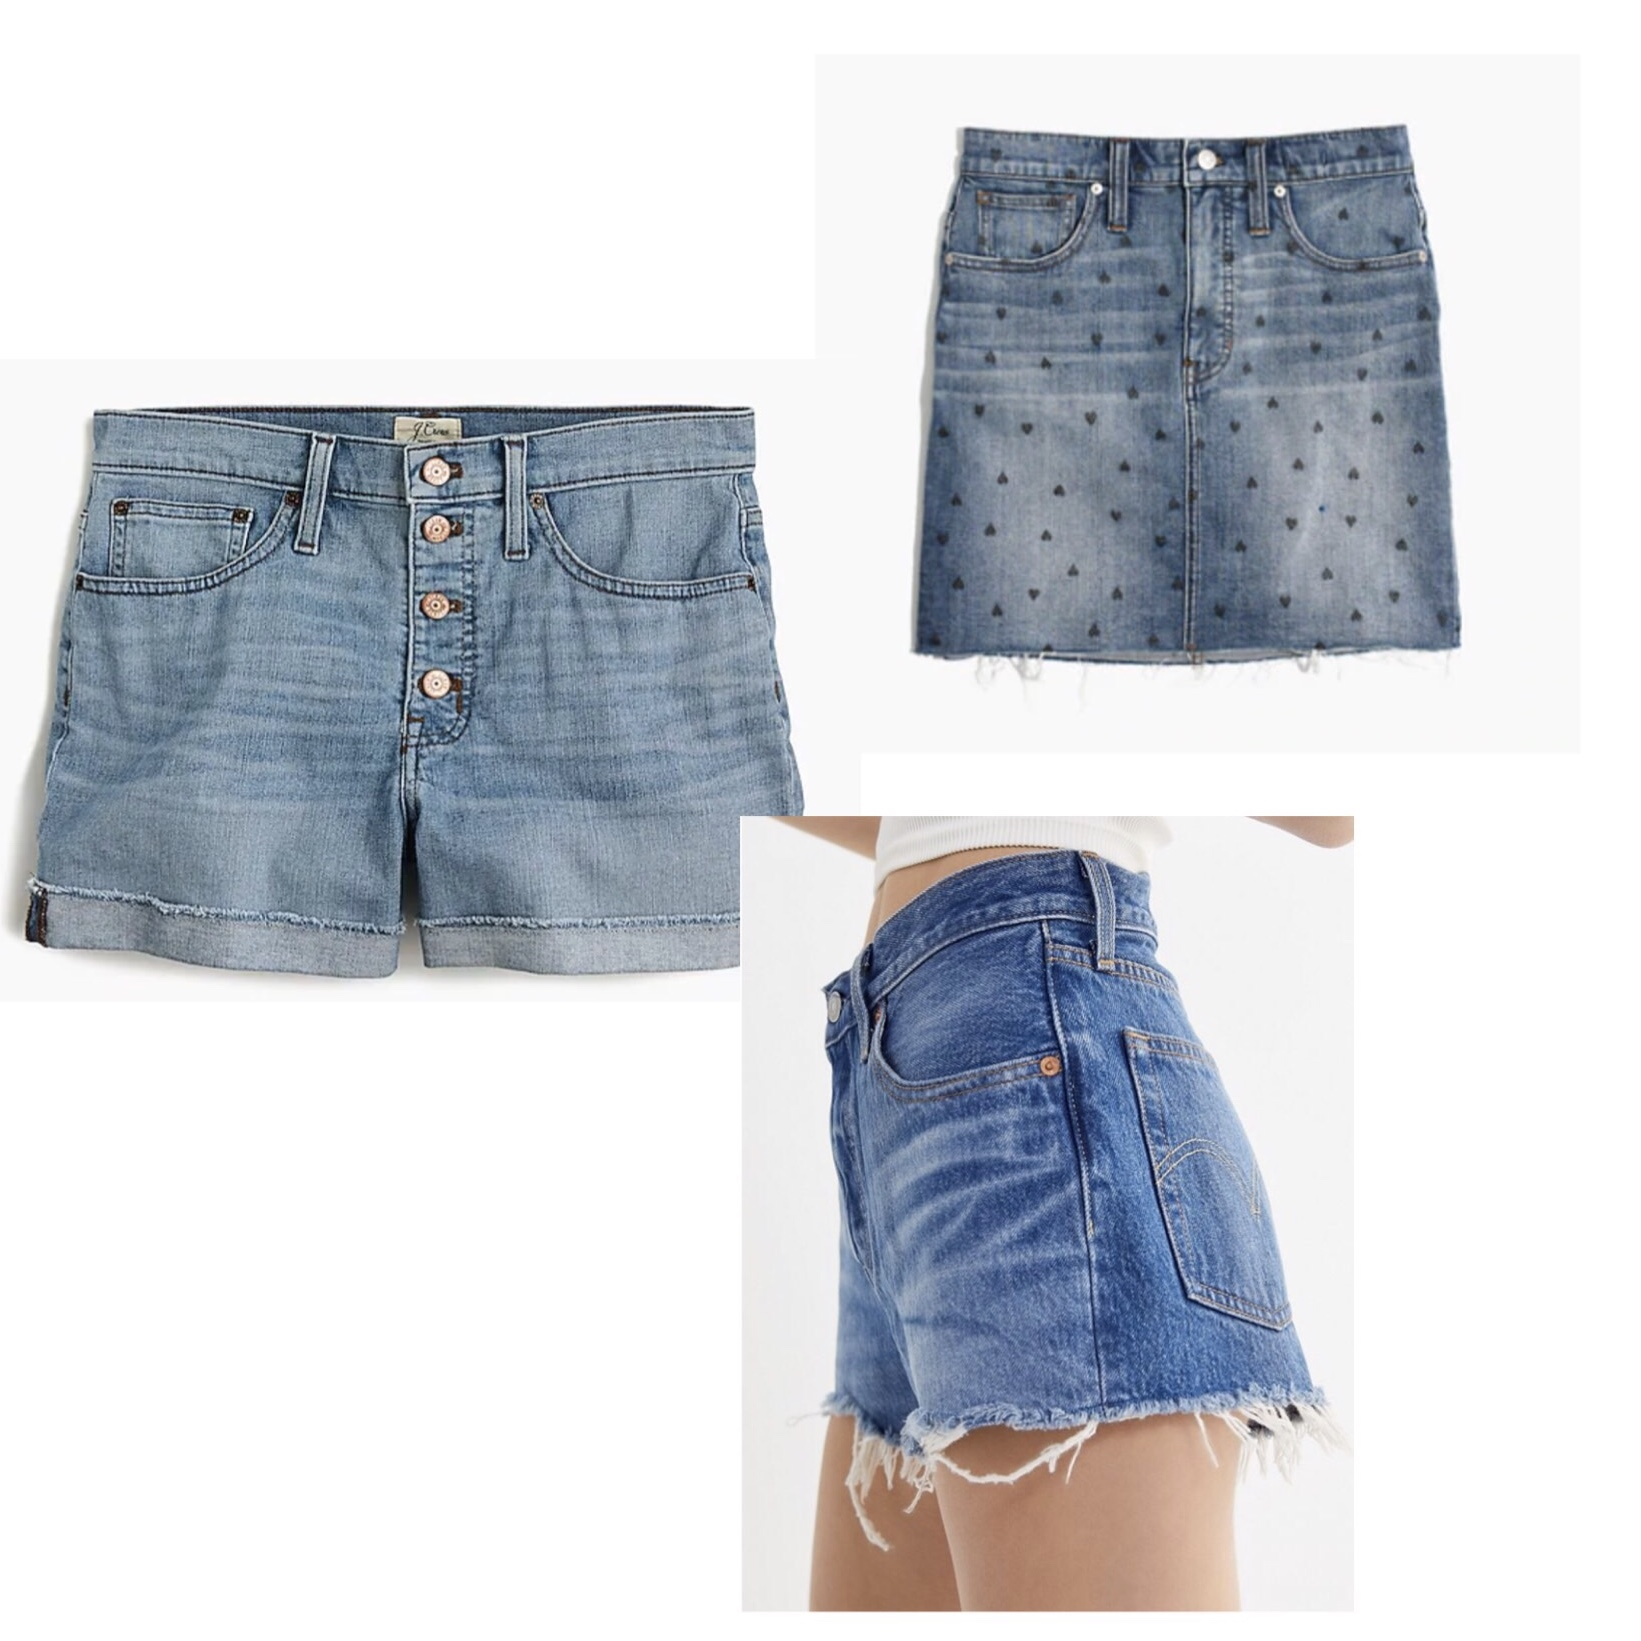 (Clockwise)  1.  J.Crew High-Rise Denim Shorts  - $80  2.  Madewell Stretch Denim Mini Skirt  - $70  3.  Levi's 501 Mid-Rise Denim Shorts  - $70